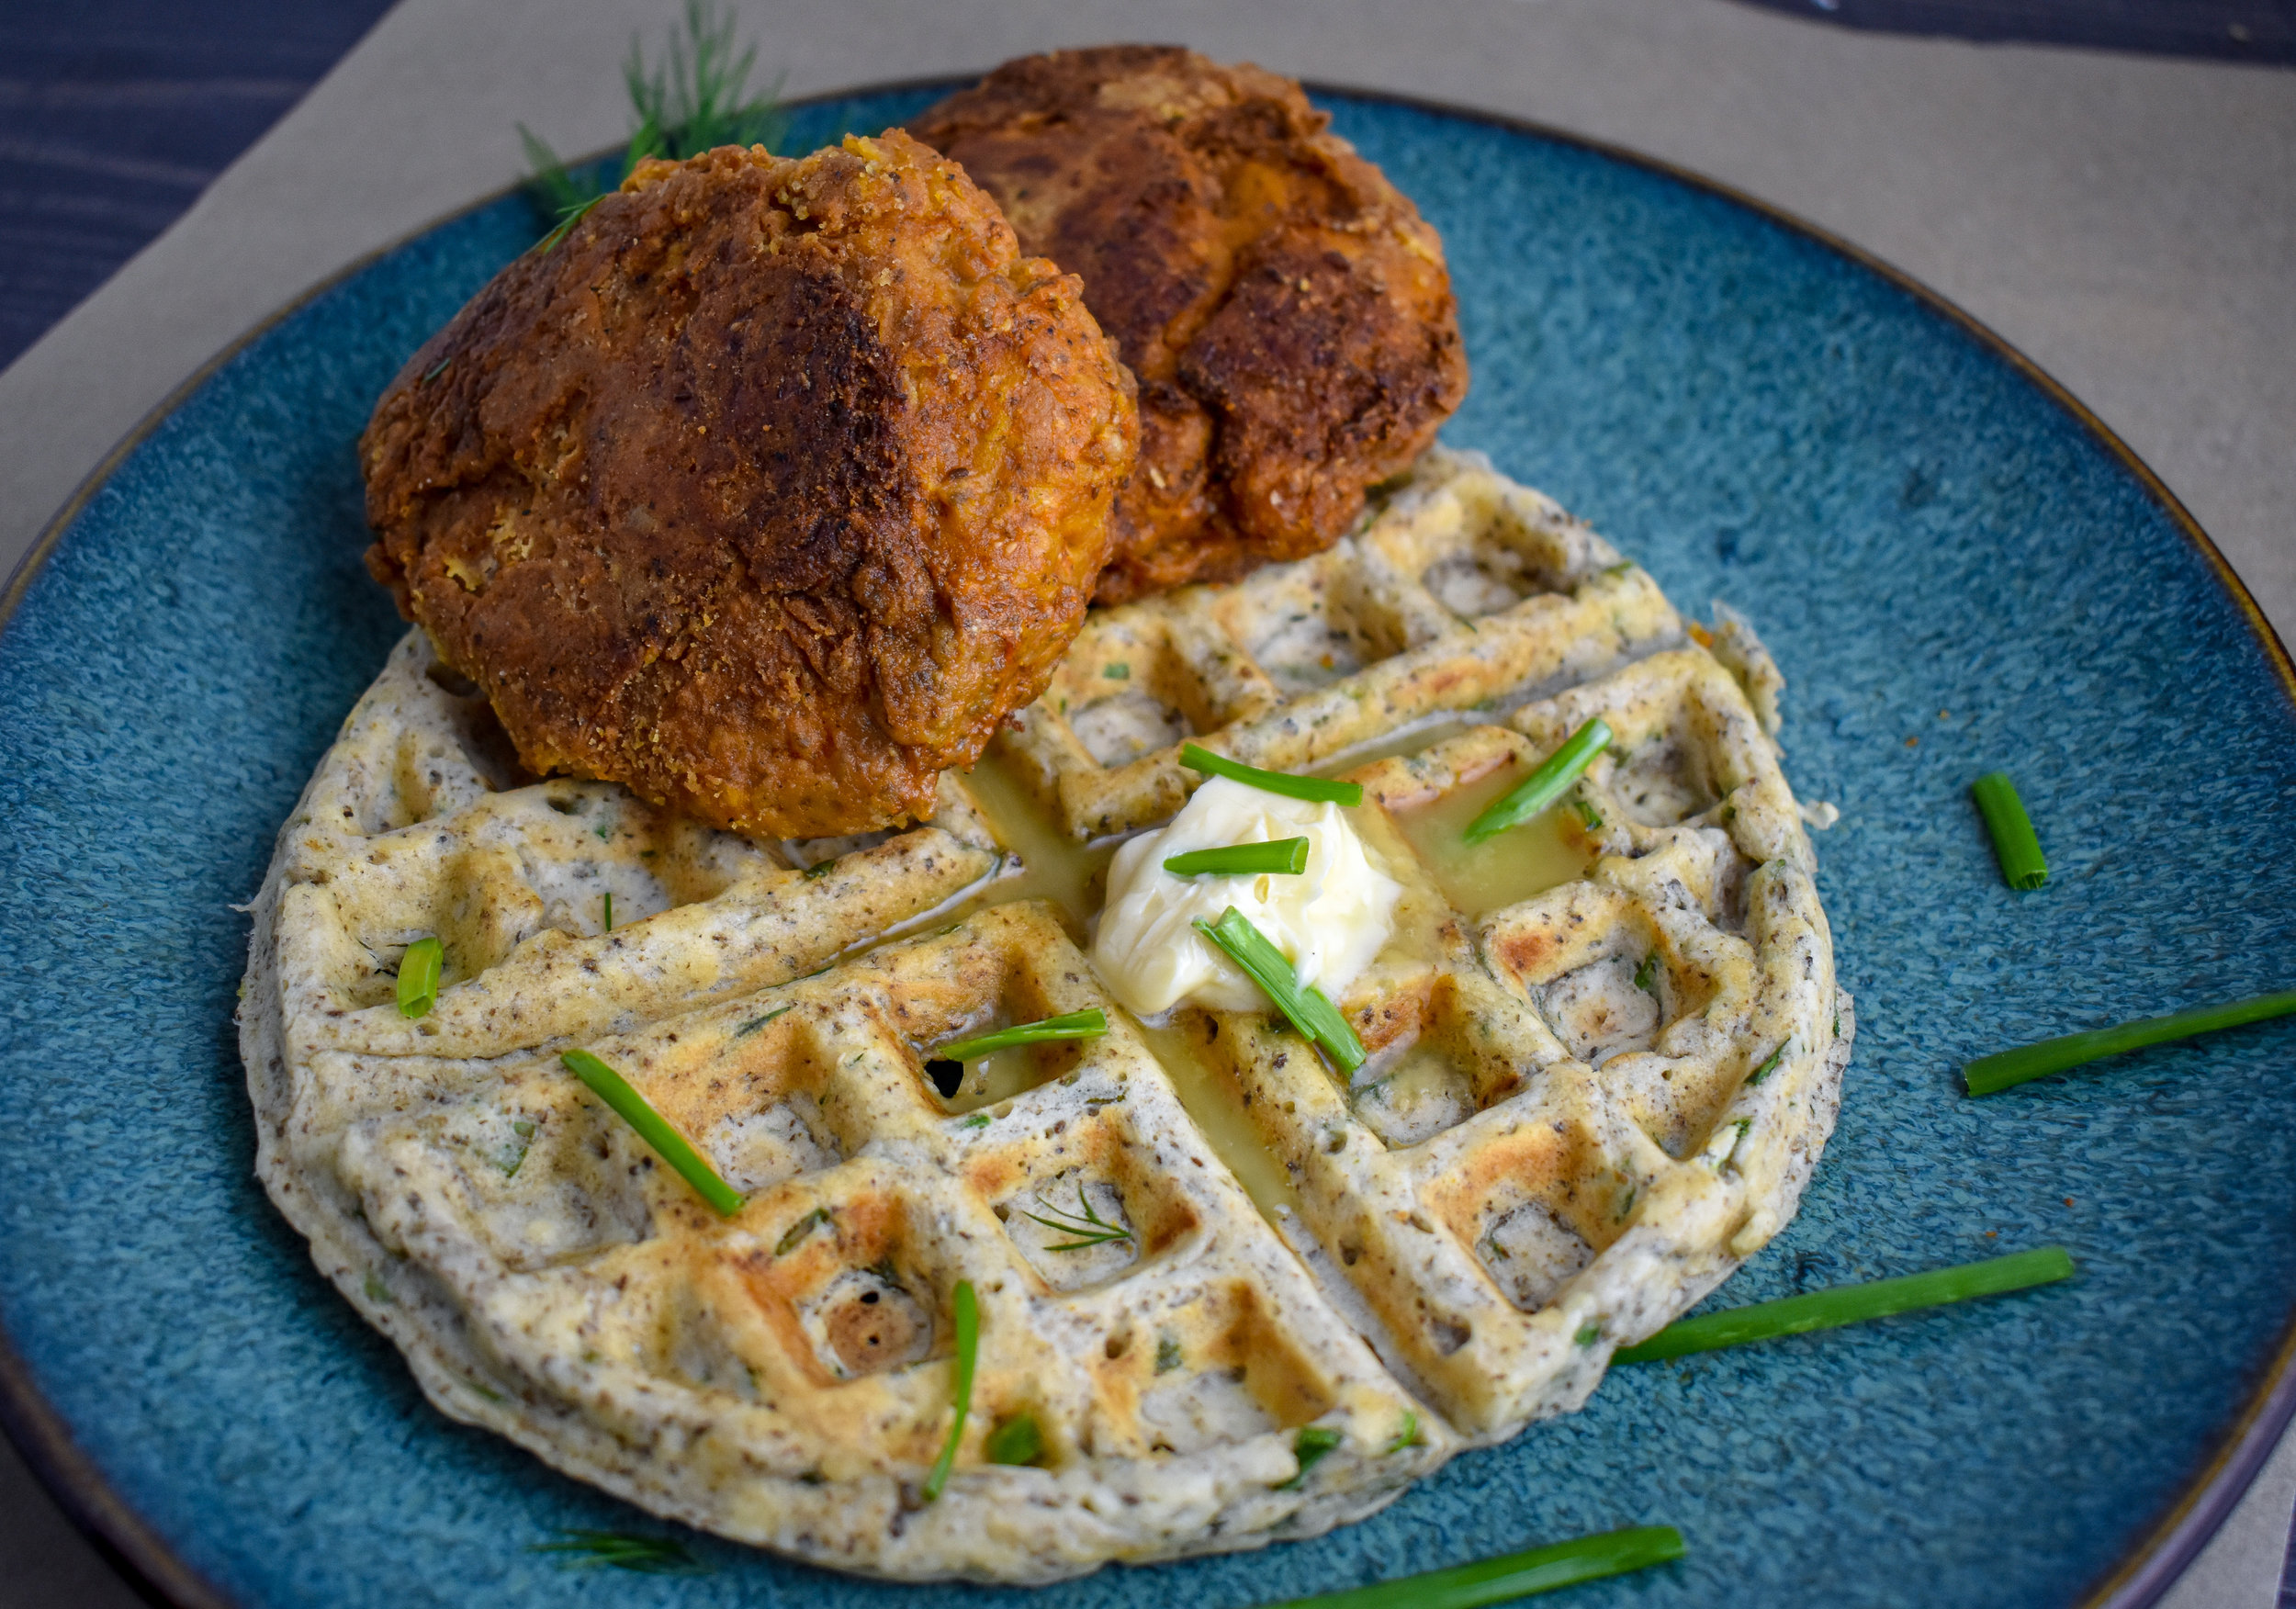 7. The last step is to make the waffles. Oil up your waffle iron. Pour in batter to coat the waffle iron (about 1/3 - 1/2 the mixture). Cook for about 6-7 minutes on medium heat. Serve your waffle with chicken. ENJOY!